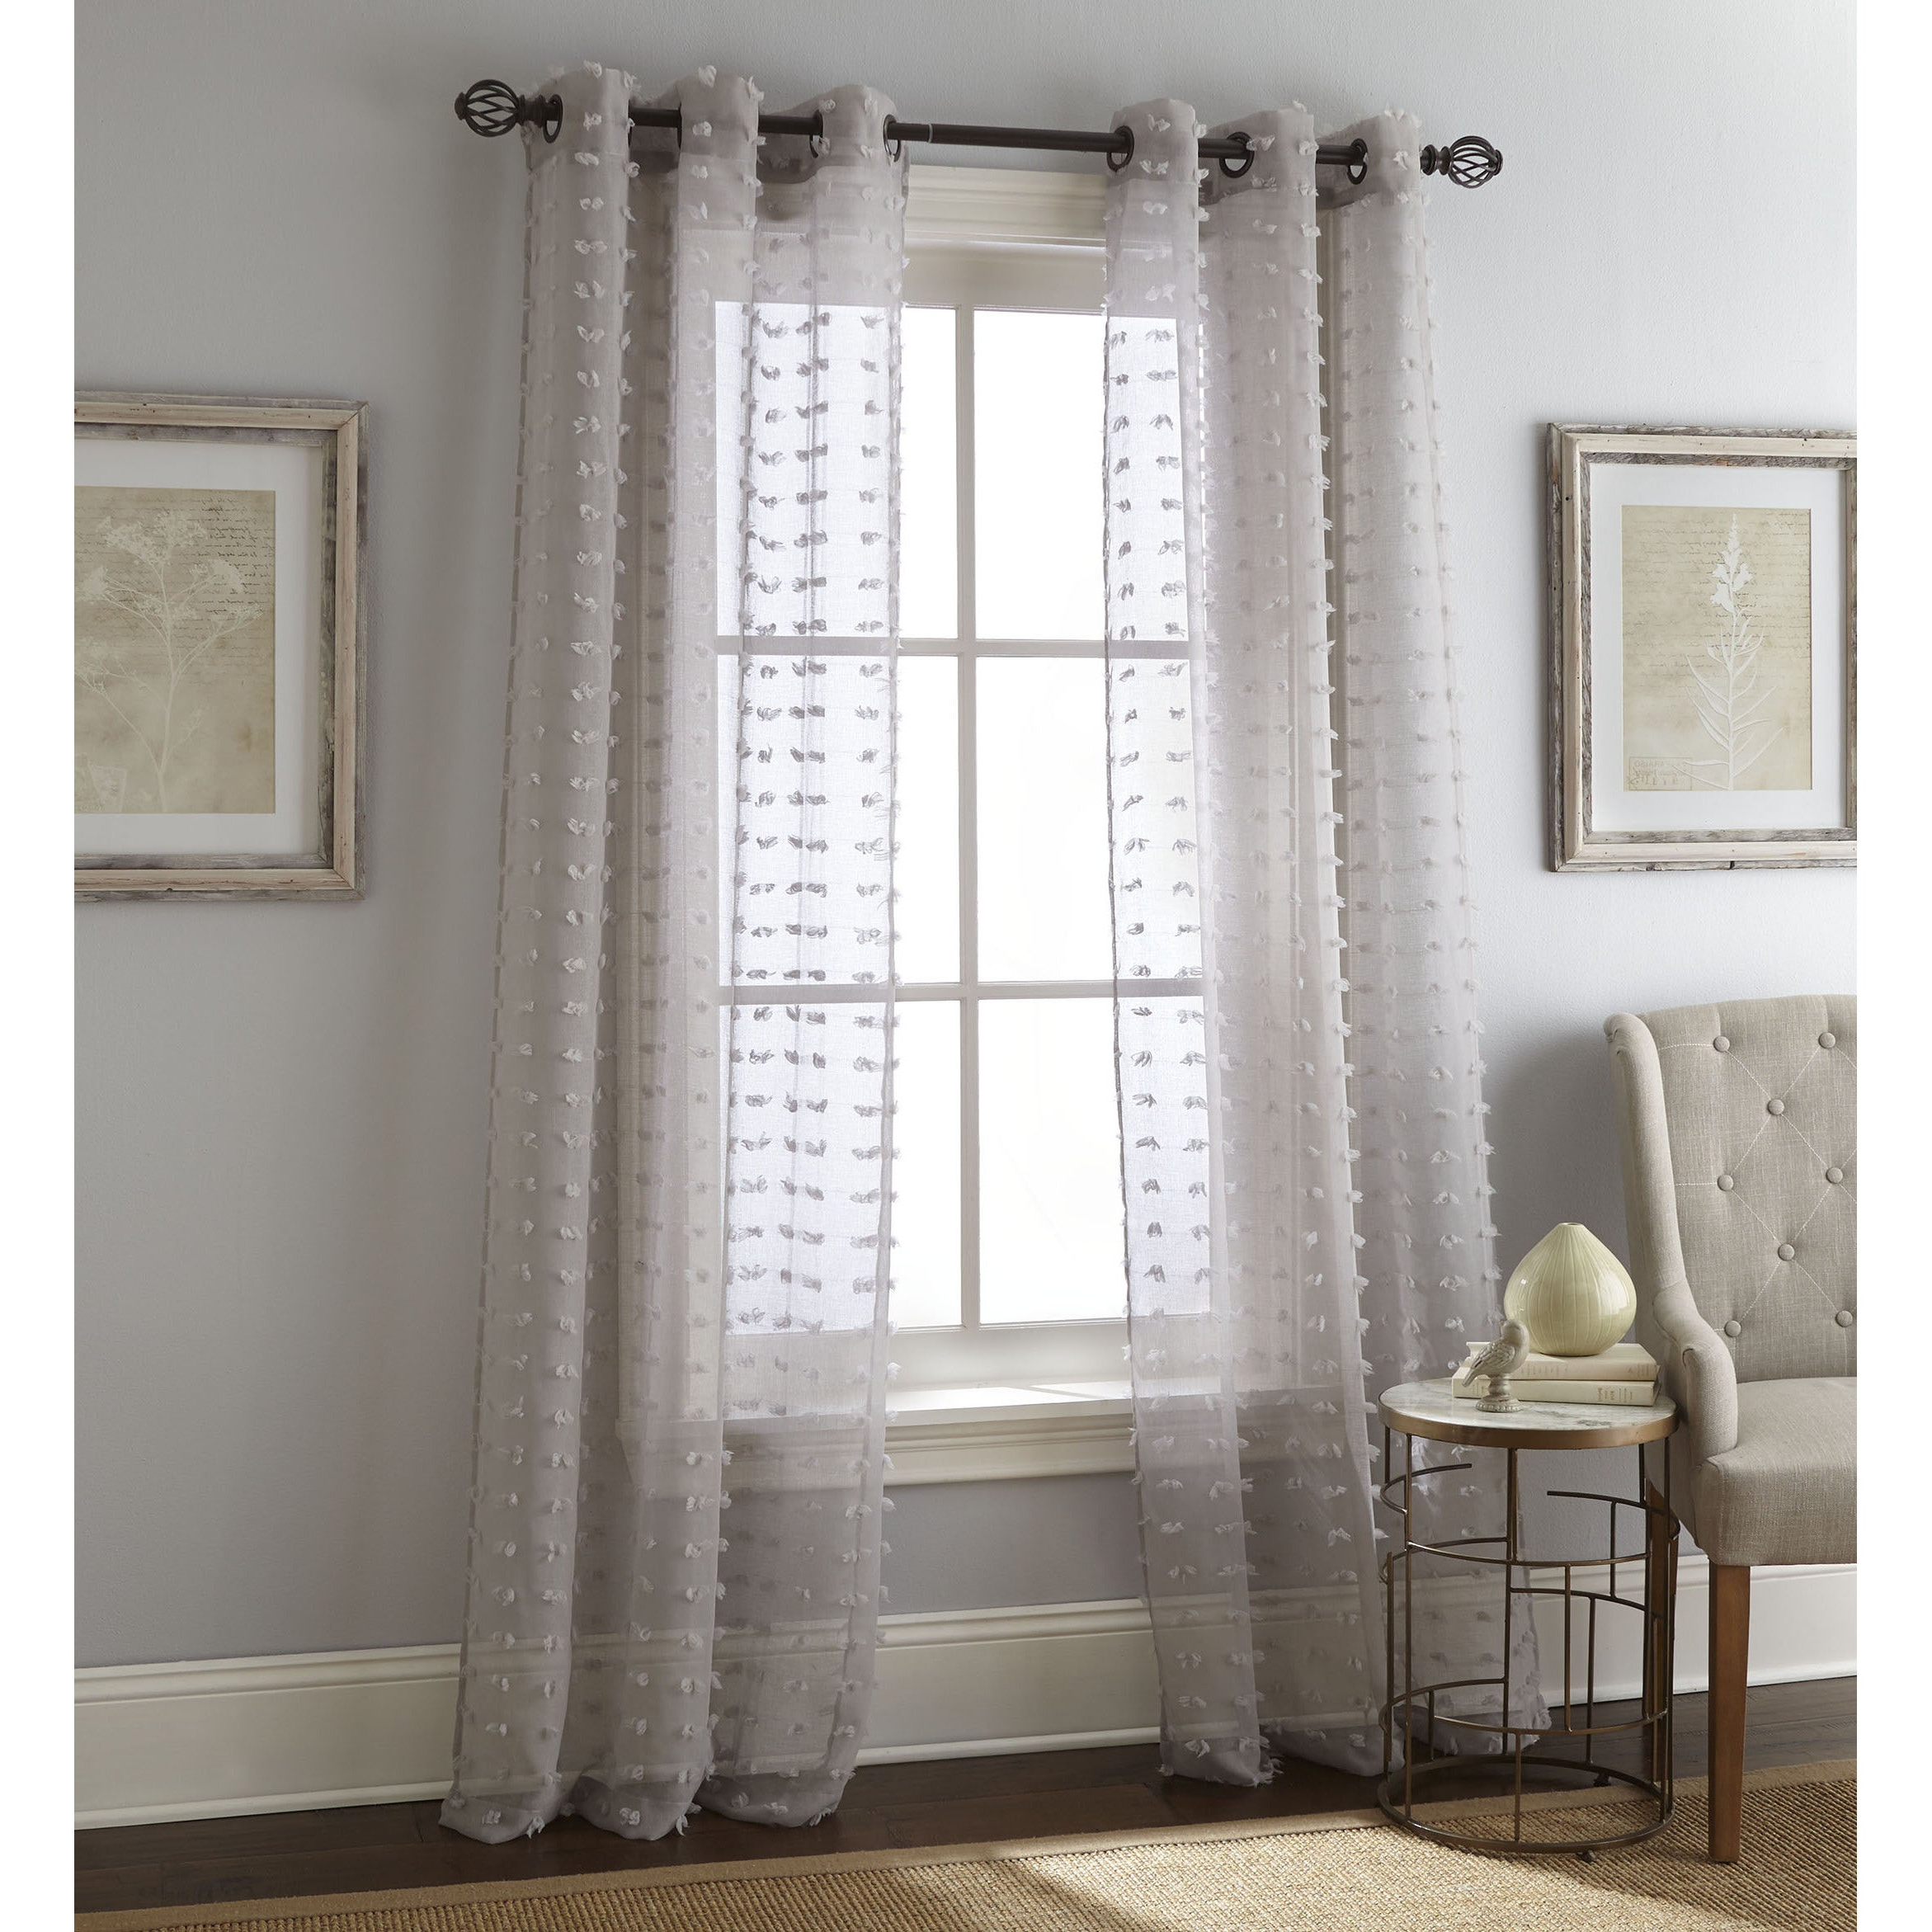 Nanshing Payton Solid Grommet Top Curtain Panel Pair In Most Up To Date Solid Grommet Top Curtain Panel Pairs (View 7 of 20)